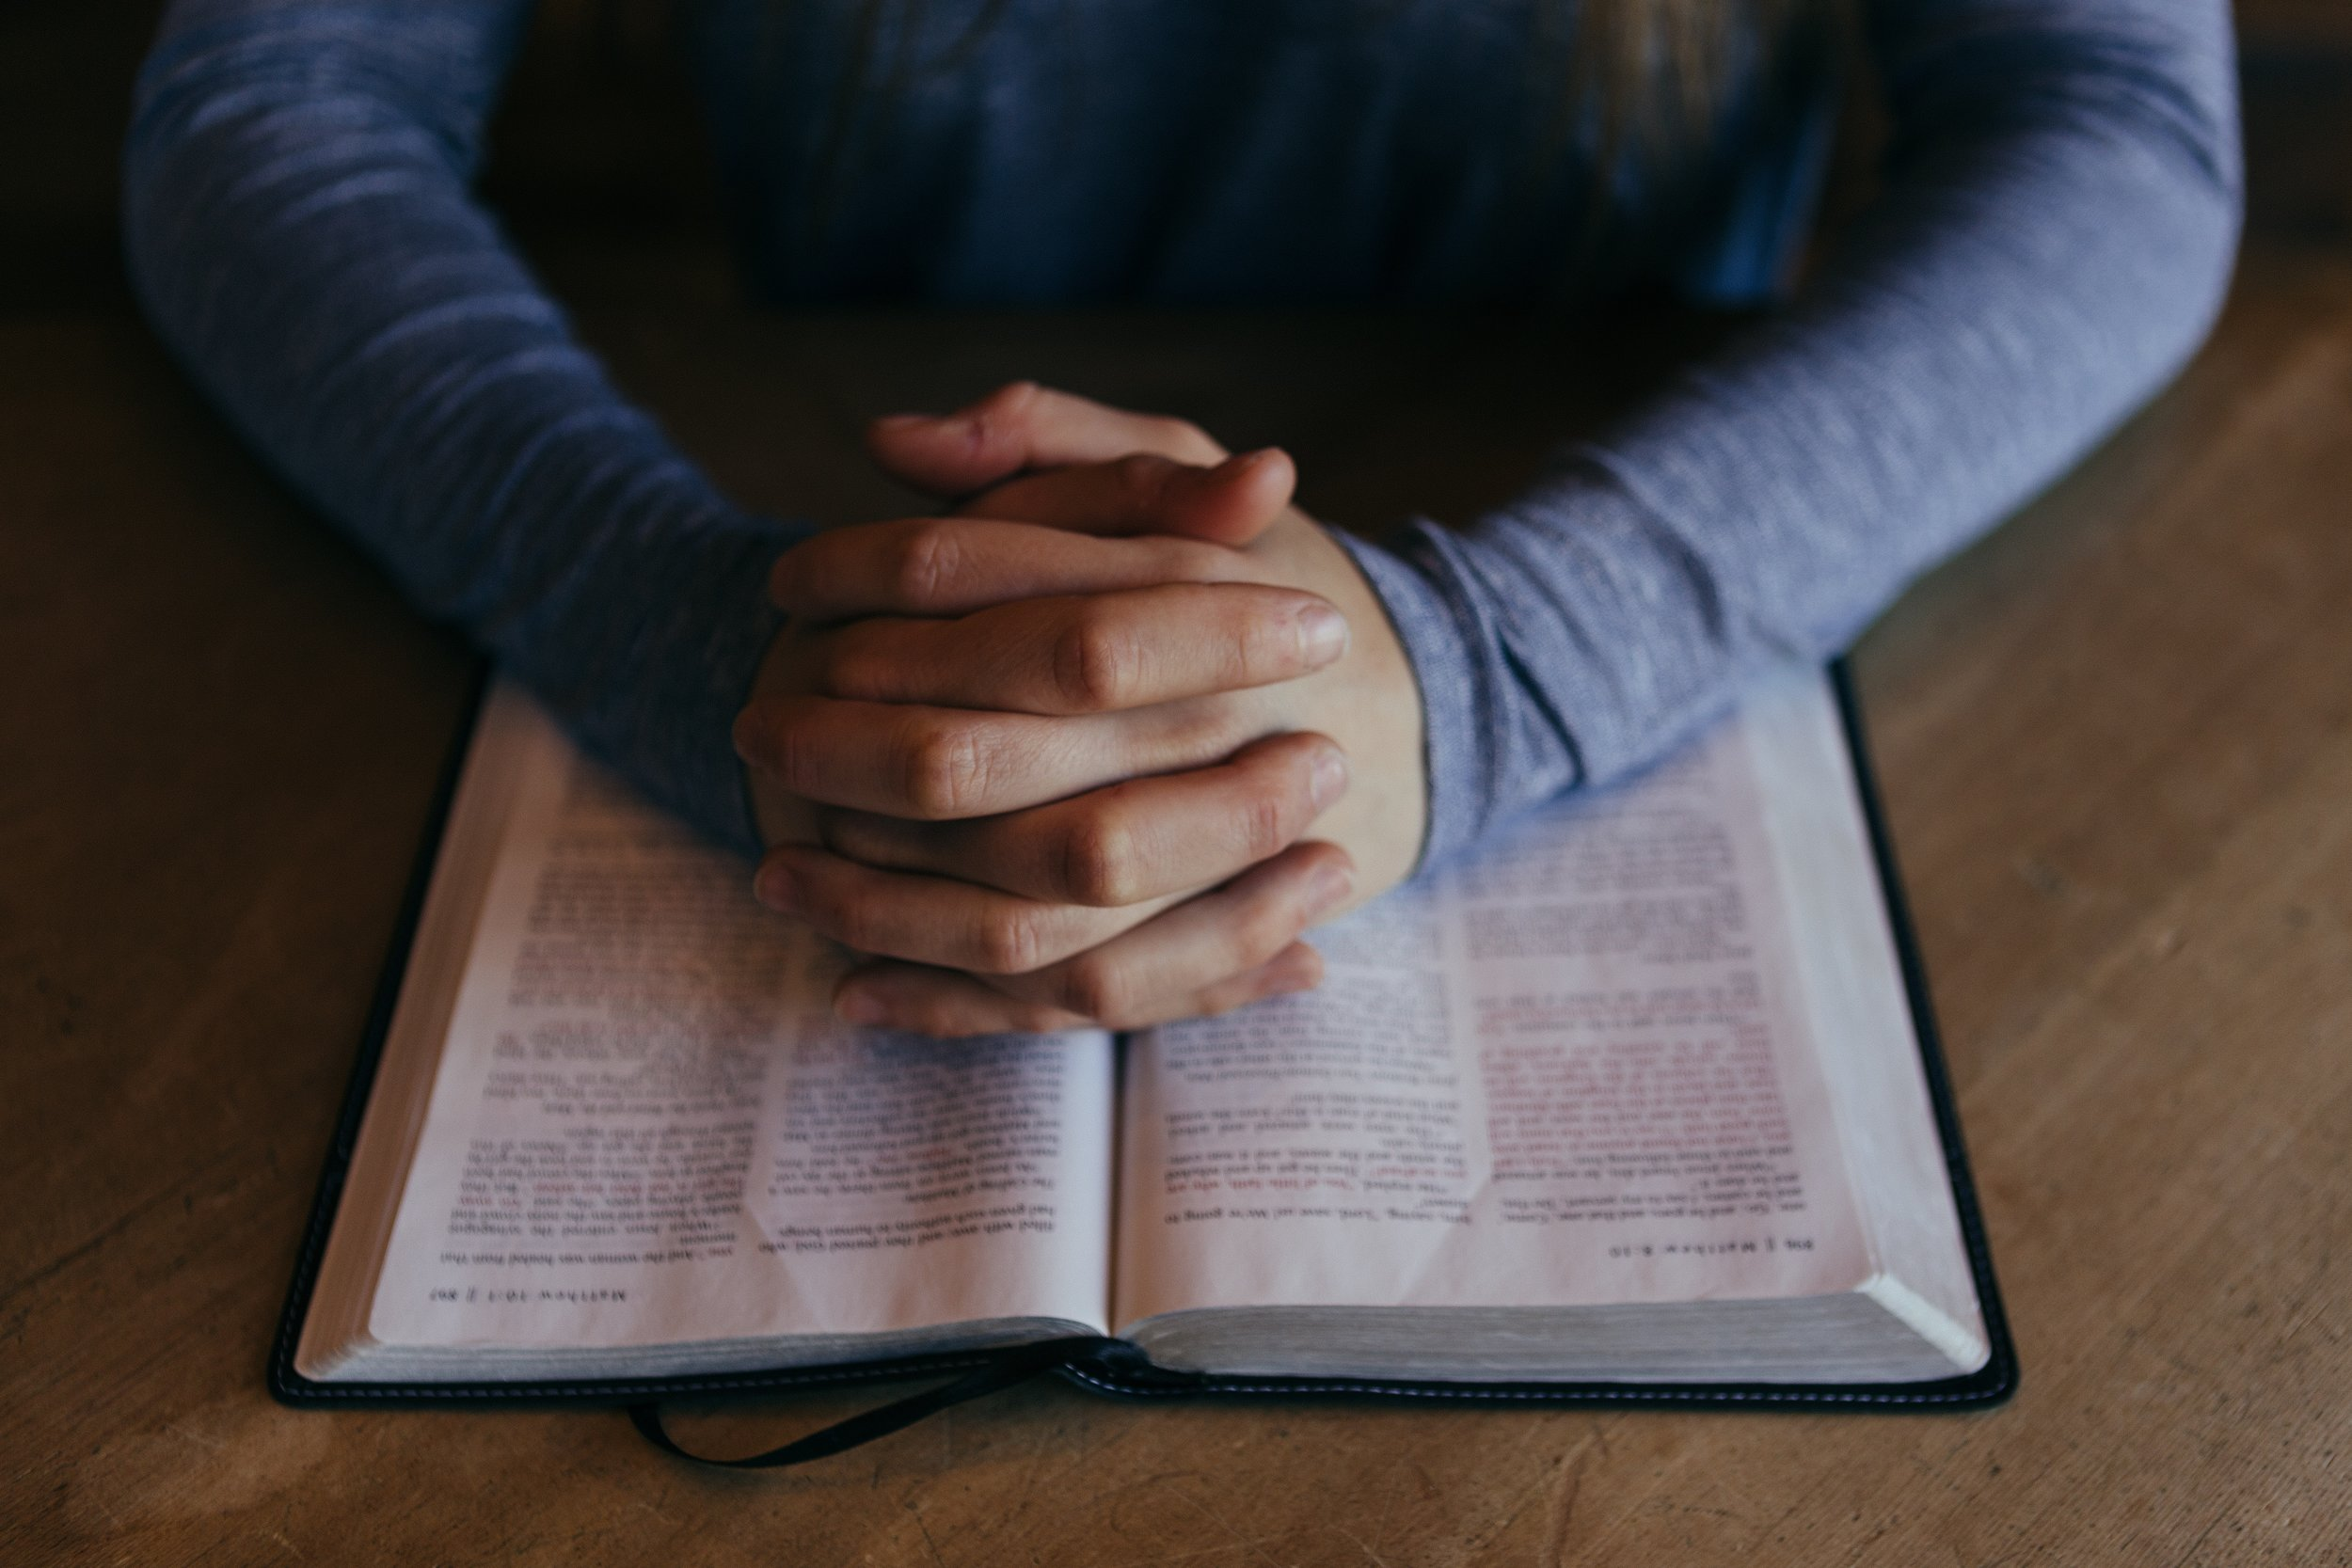 The Lord's Prayer - Jesus gives us a template as to how to pray to God. This changes in an enormous way how the world thought about approaching God.